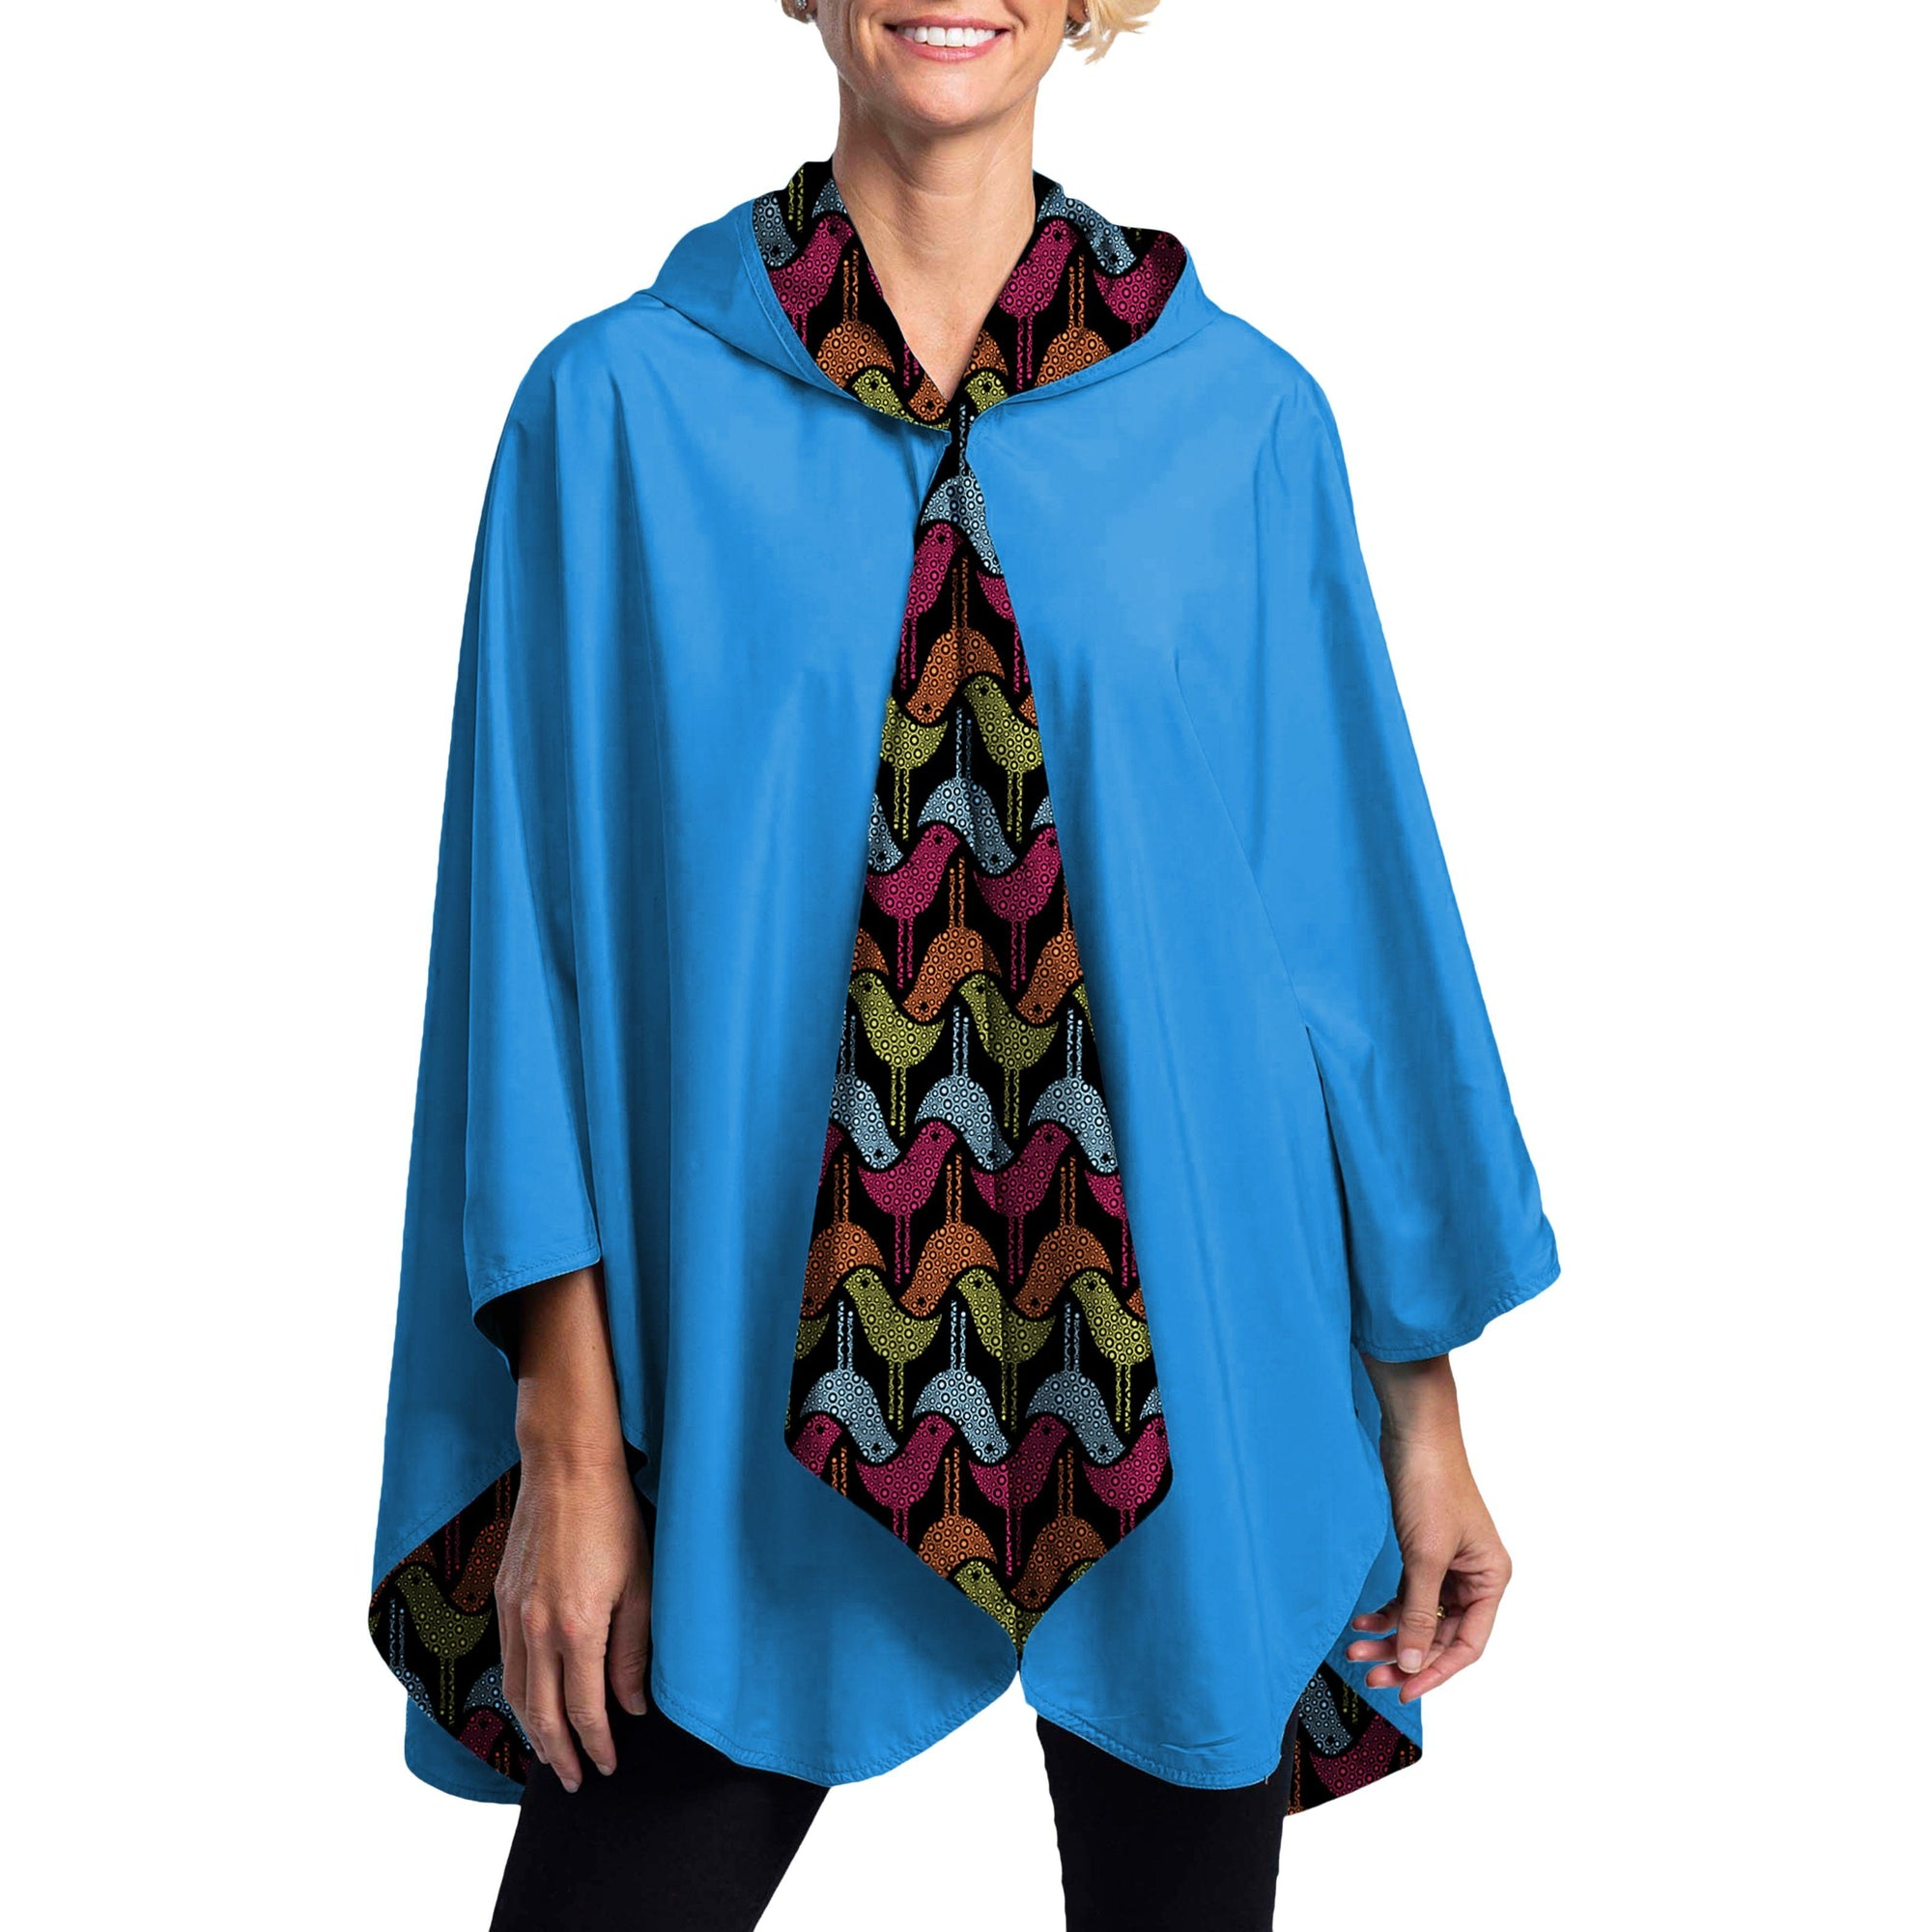 Women wearing a Bluebird & Birds RainCaper travel cape with the Birds side out, revealing the Bluebird color at the lapels and cuffs